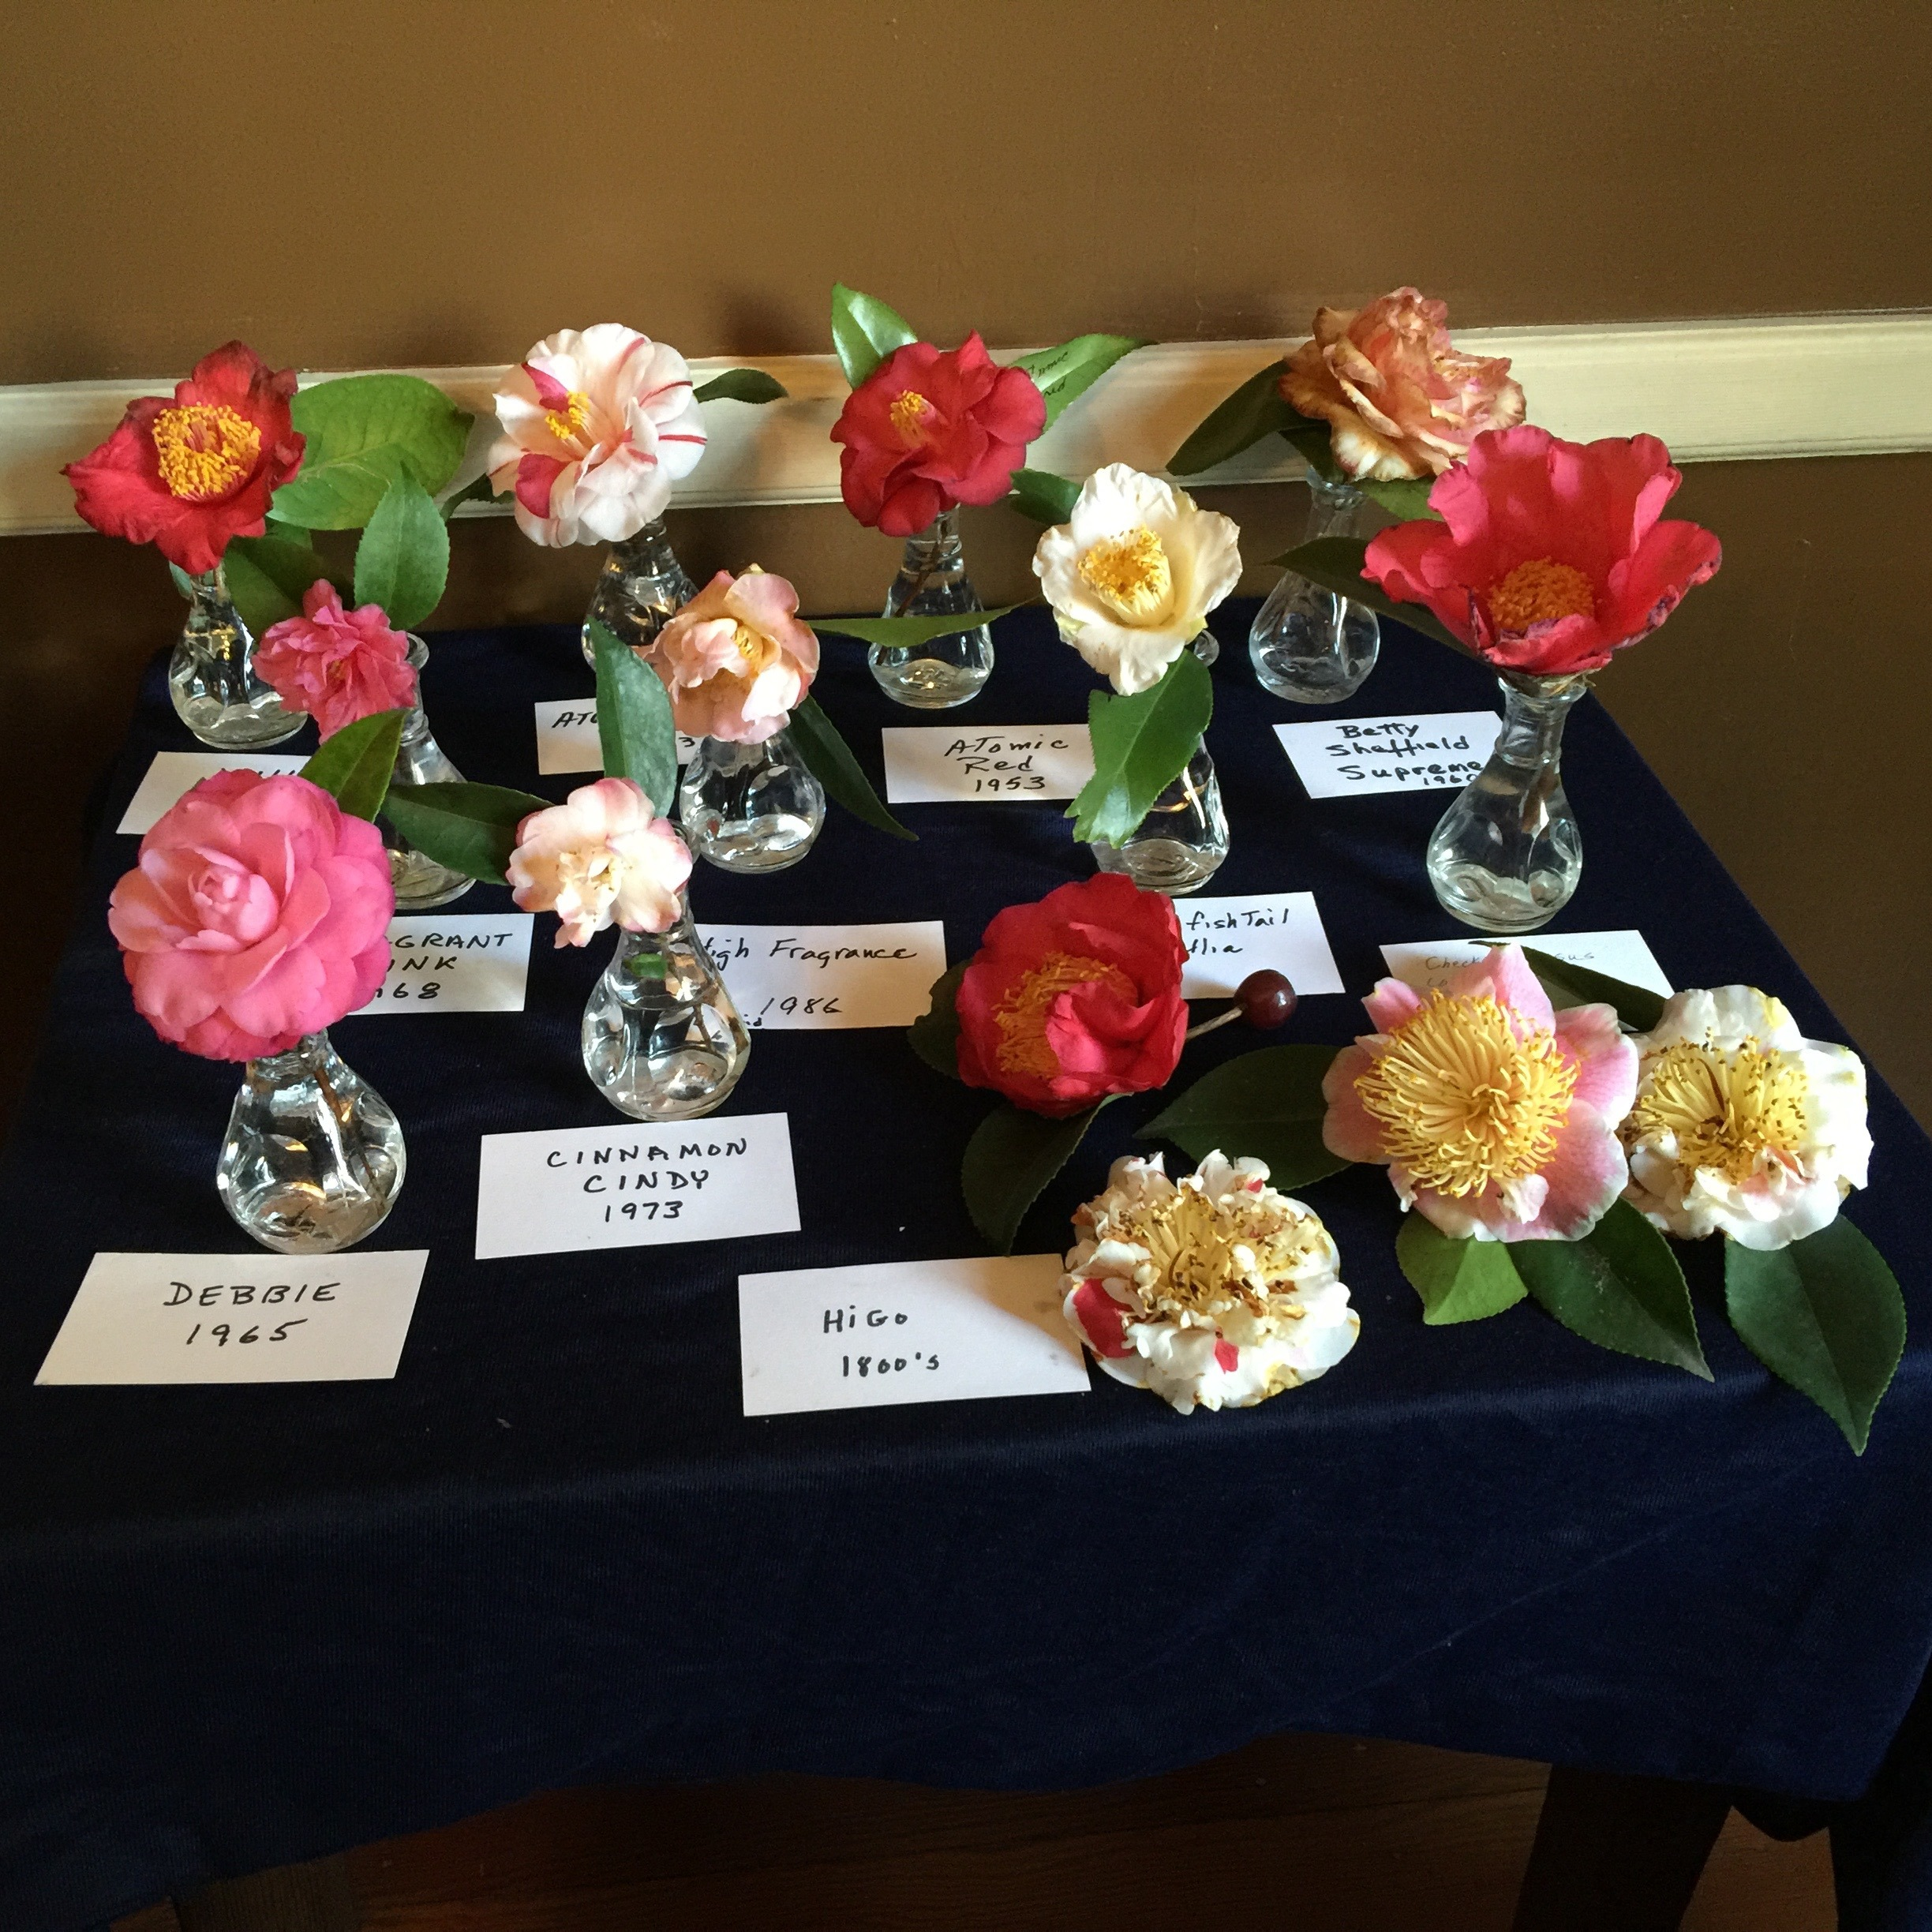 Tabletop holding individual blooms classified by name and year of naming.